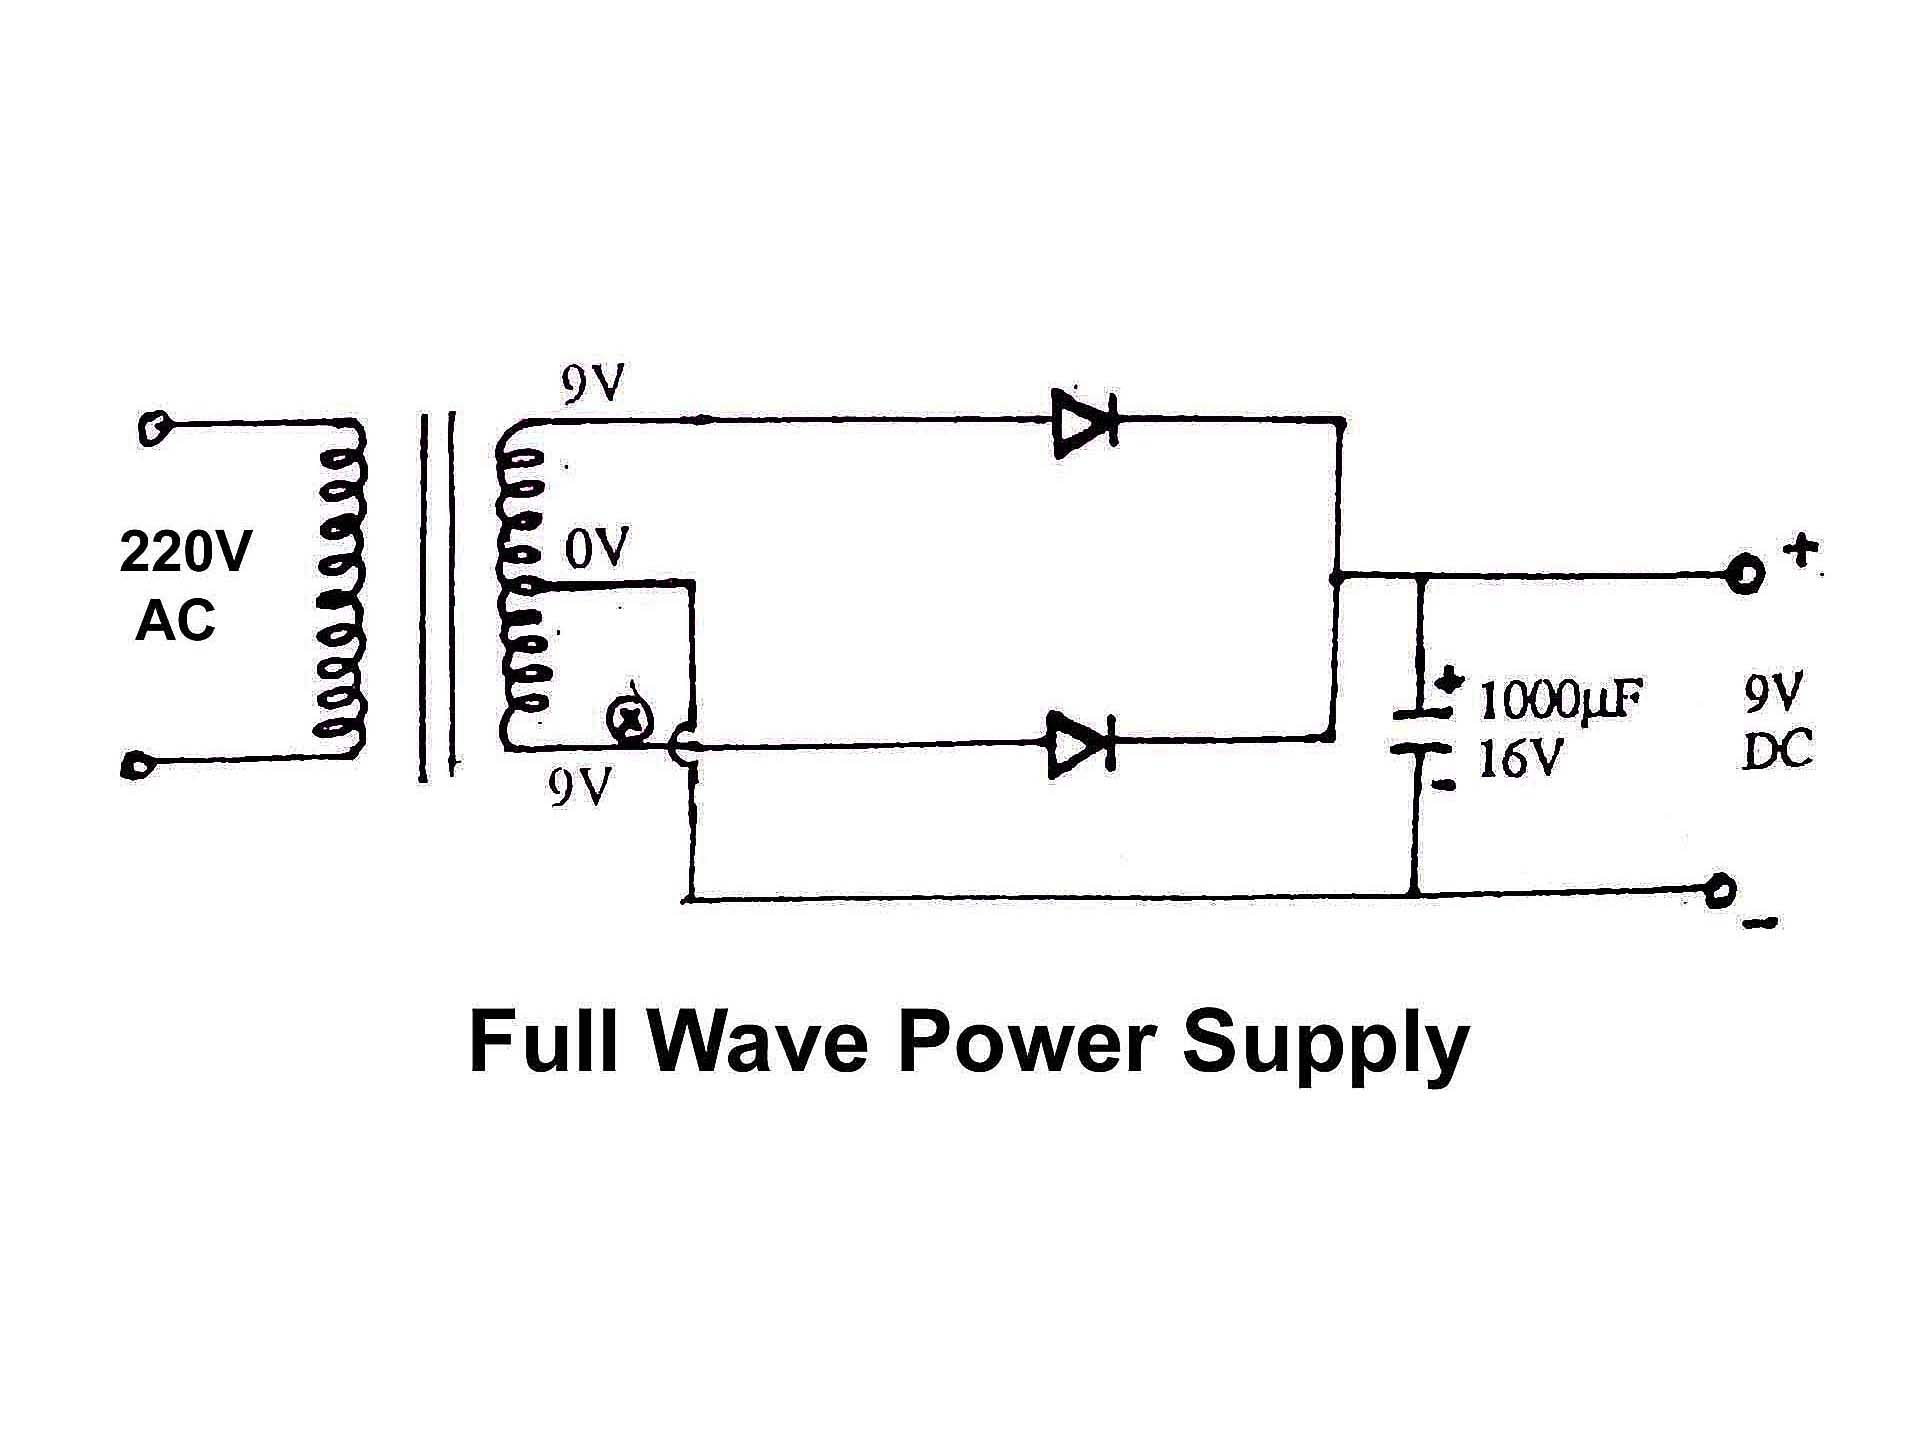 Full Wave Power Supply Diagram